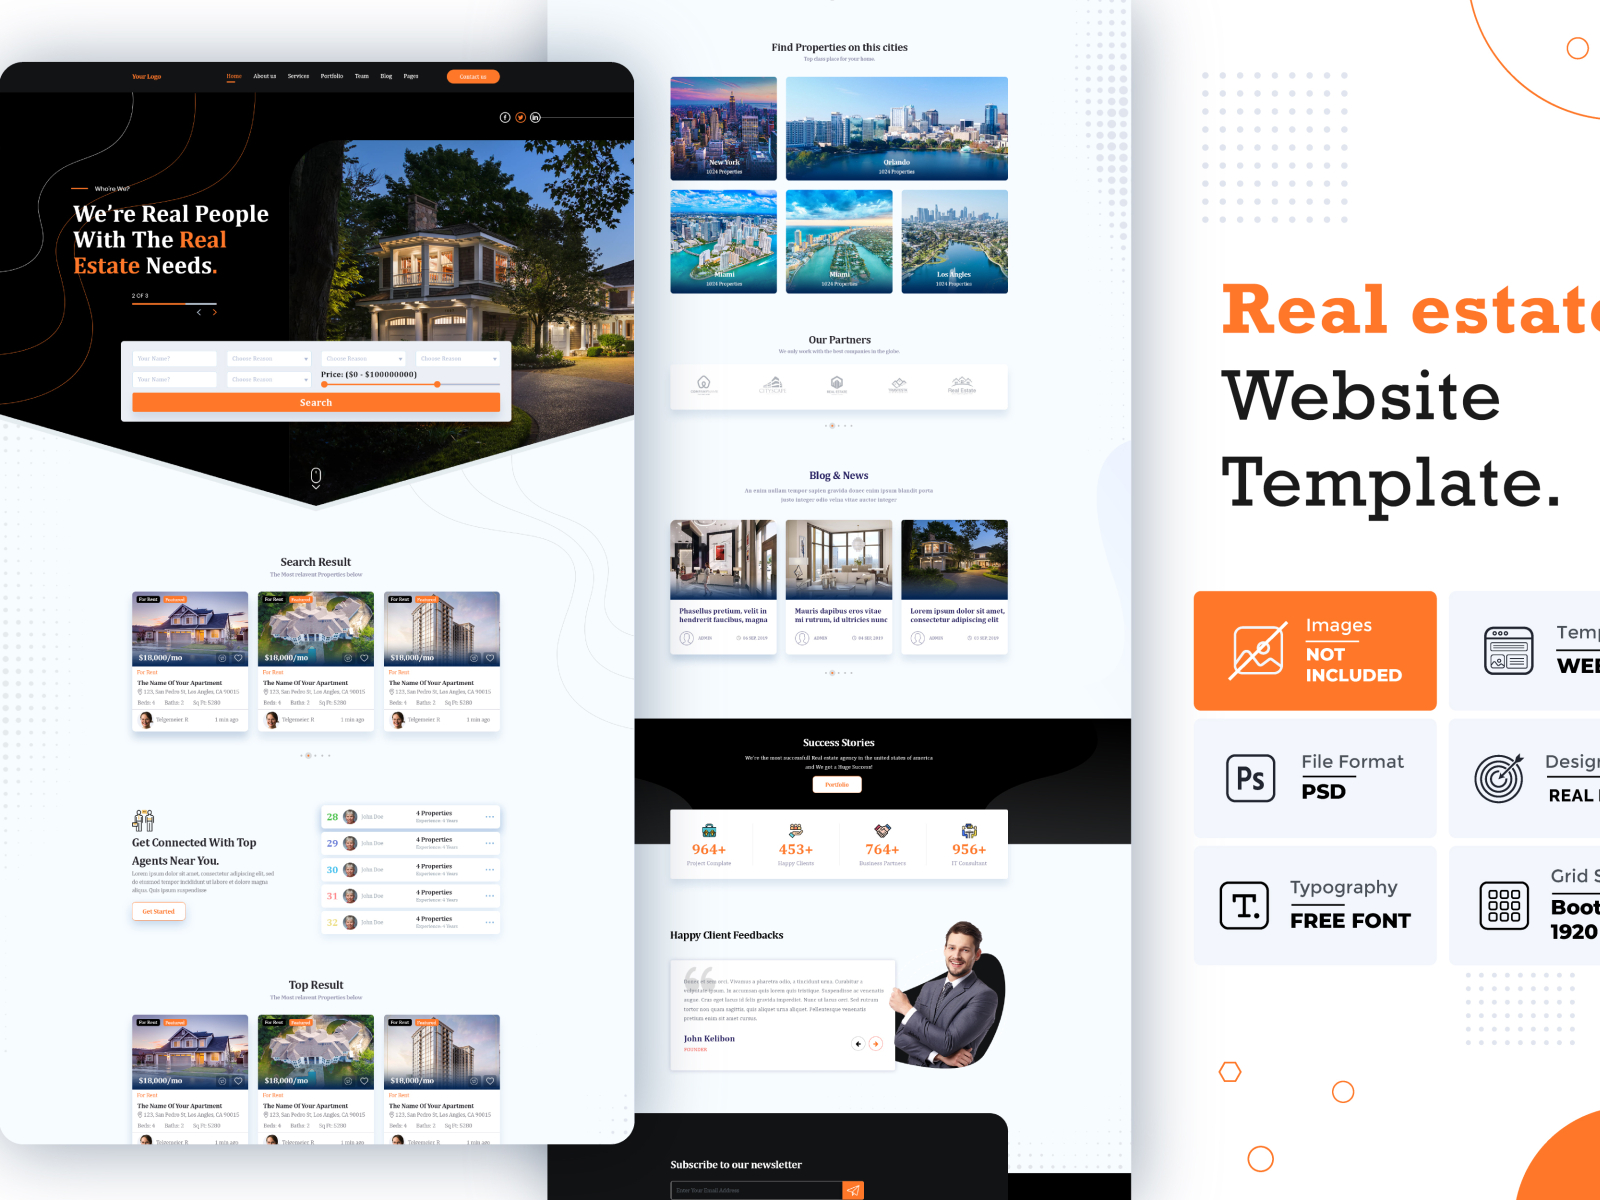 Real Estate Website Template By Md Rabiul Islam On Dribbble